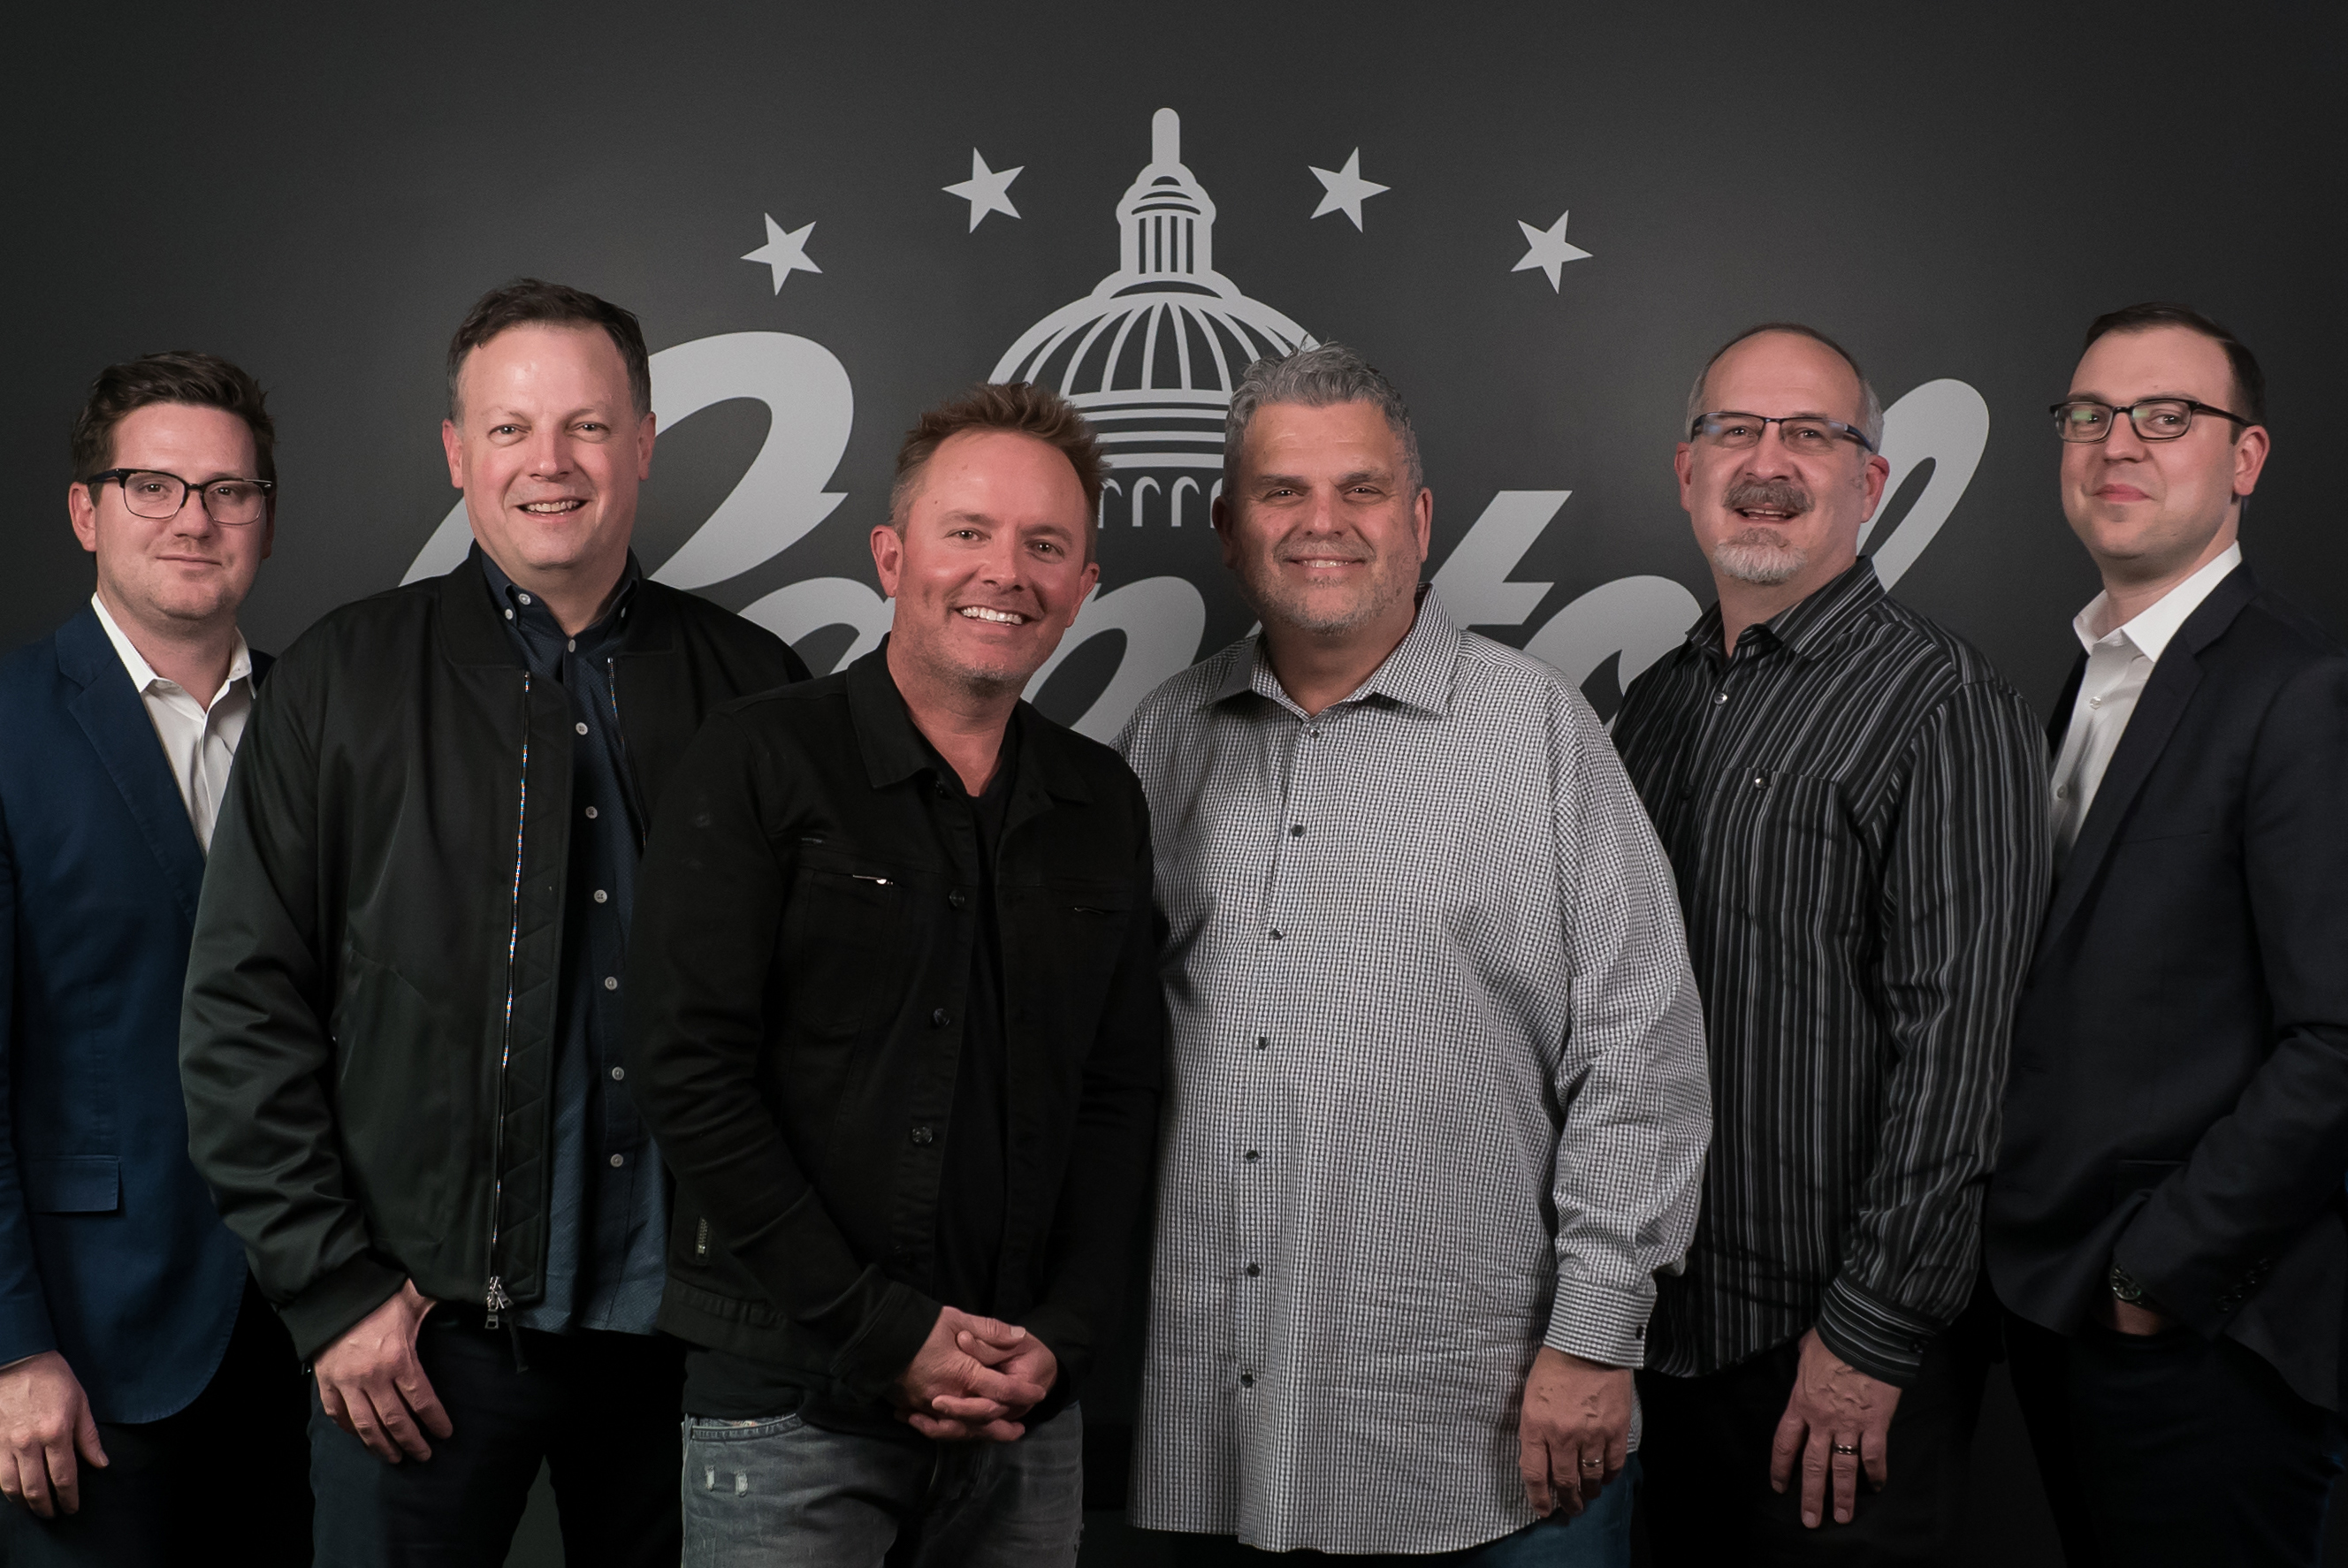 Chris Tomlin Extends Capitol Christian Music Group Deal, Launches Bowyer & Bow Imprint